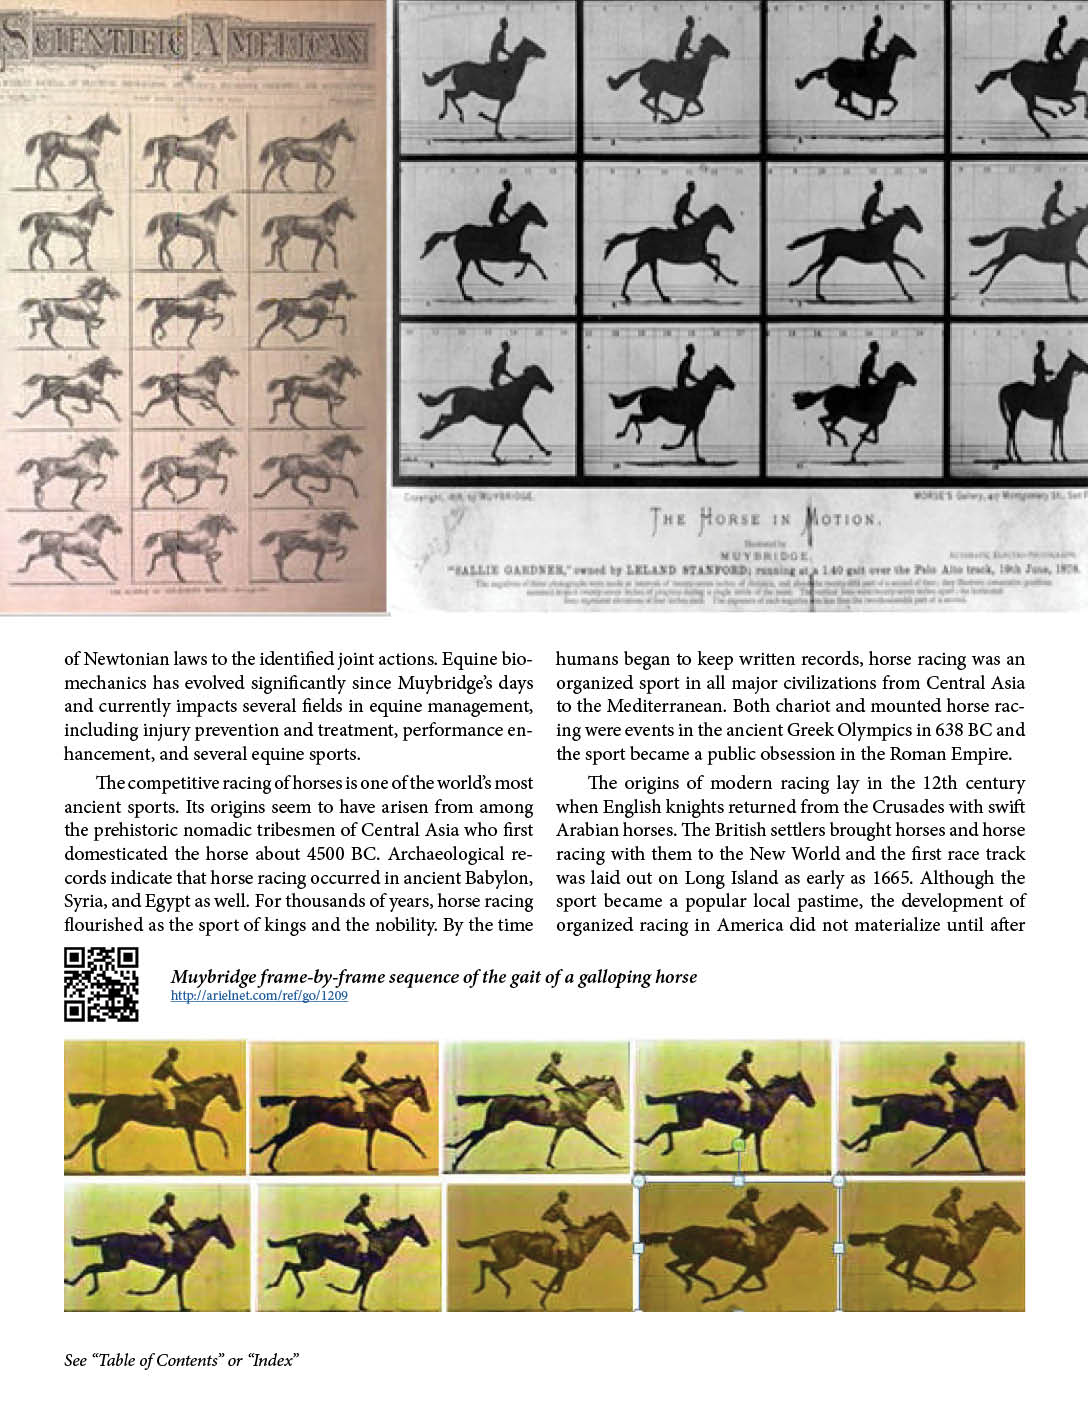 hight resolution of muybridge frame by frame sequence of the gait of a galloping horse http arielnet com ref go 1209